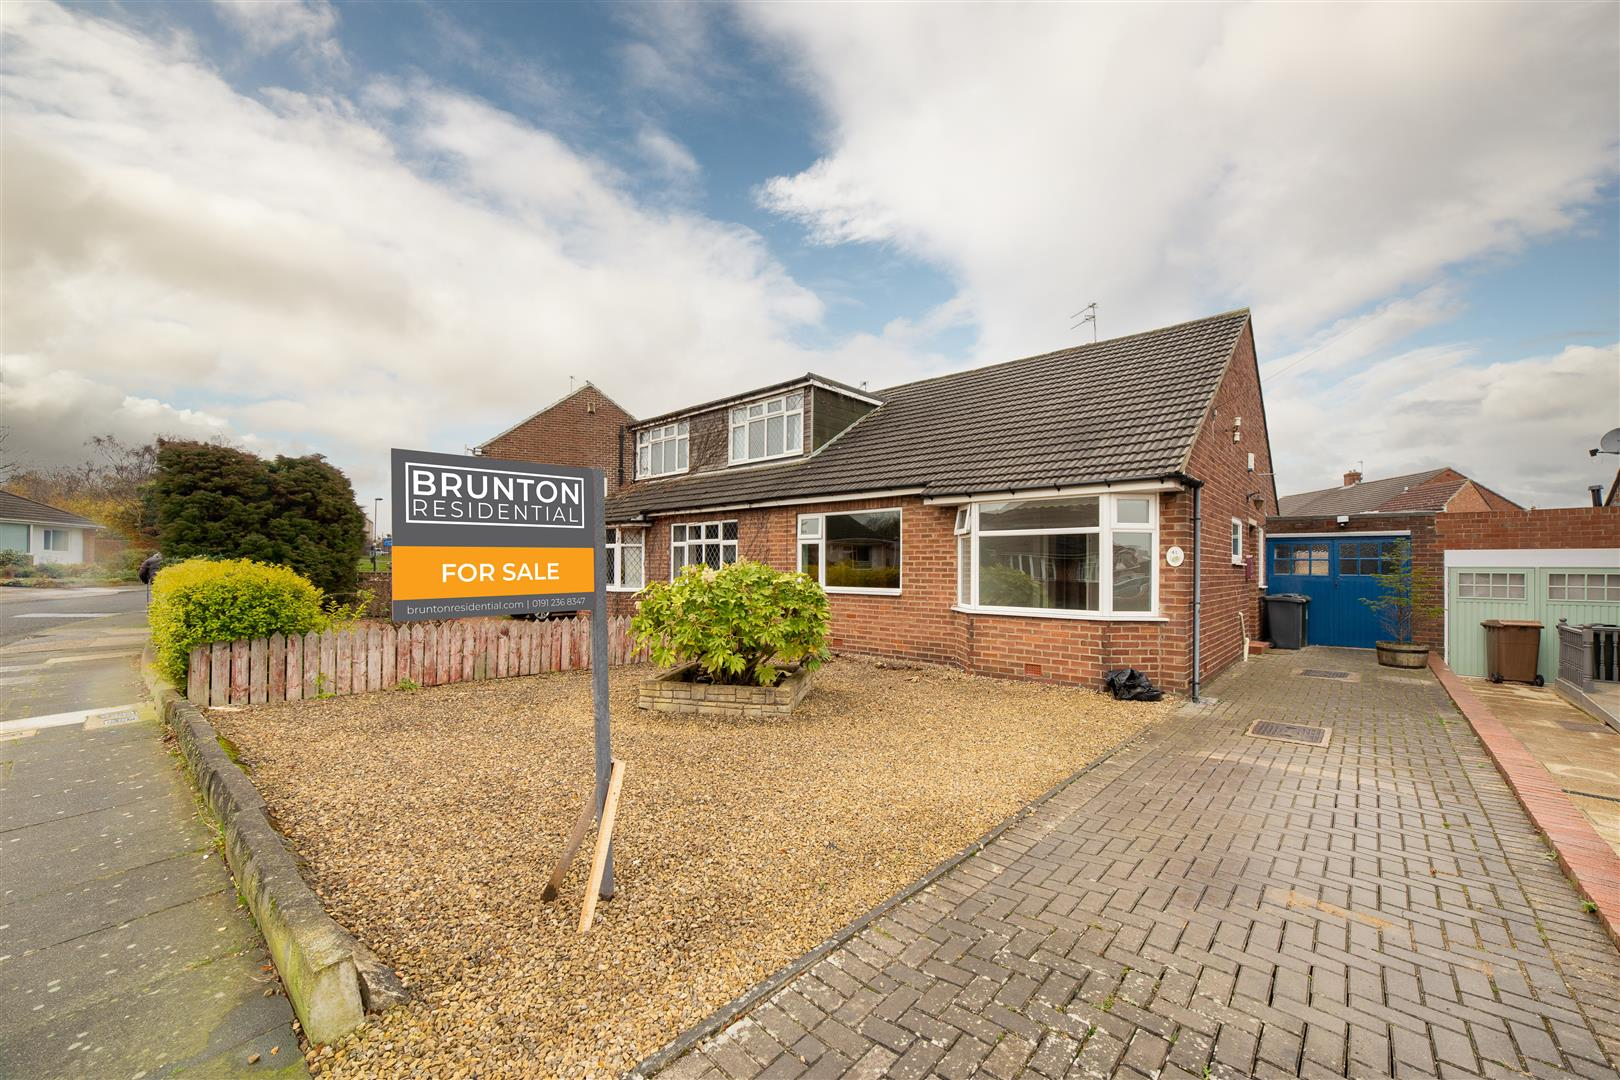 2 bed semi-detached bungalow for sale in Newcastle Upon Tyne, NE13 6AB - Property Image 1